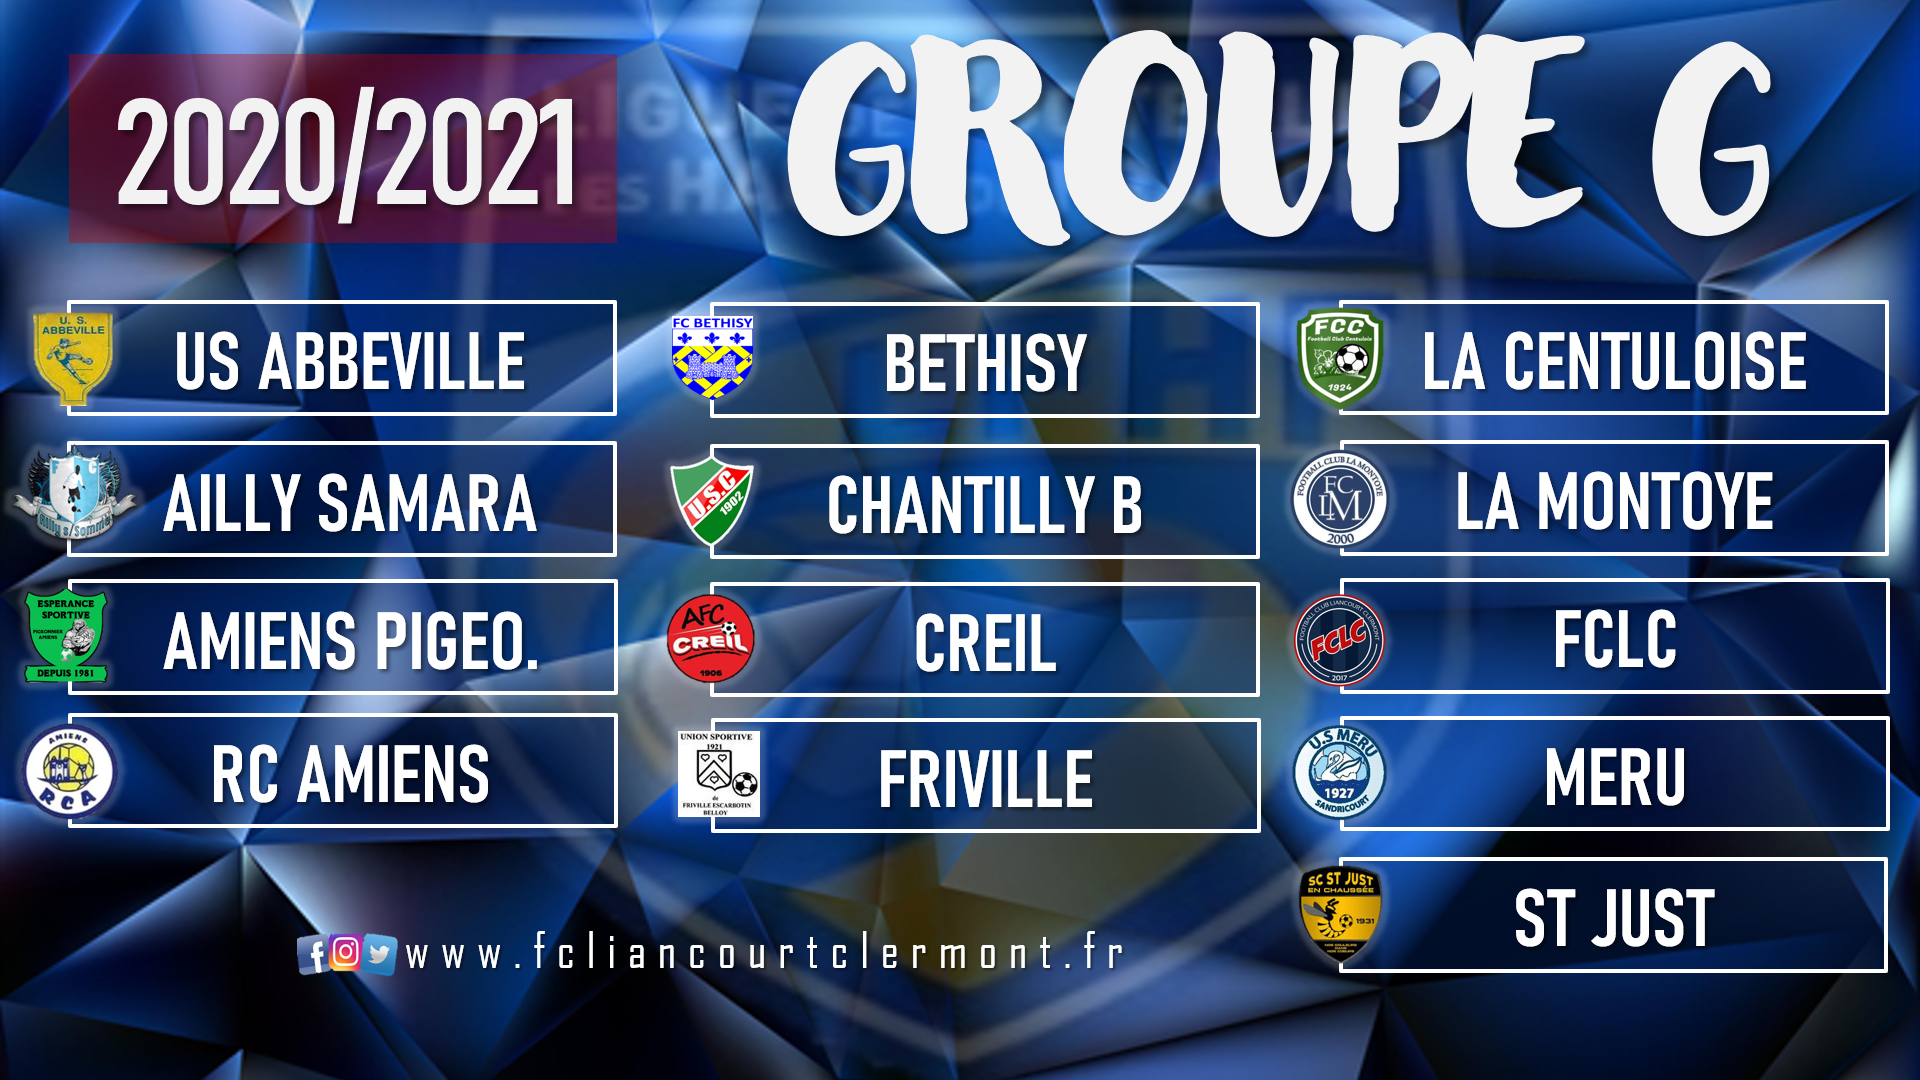 Groupe g